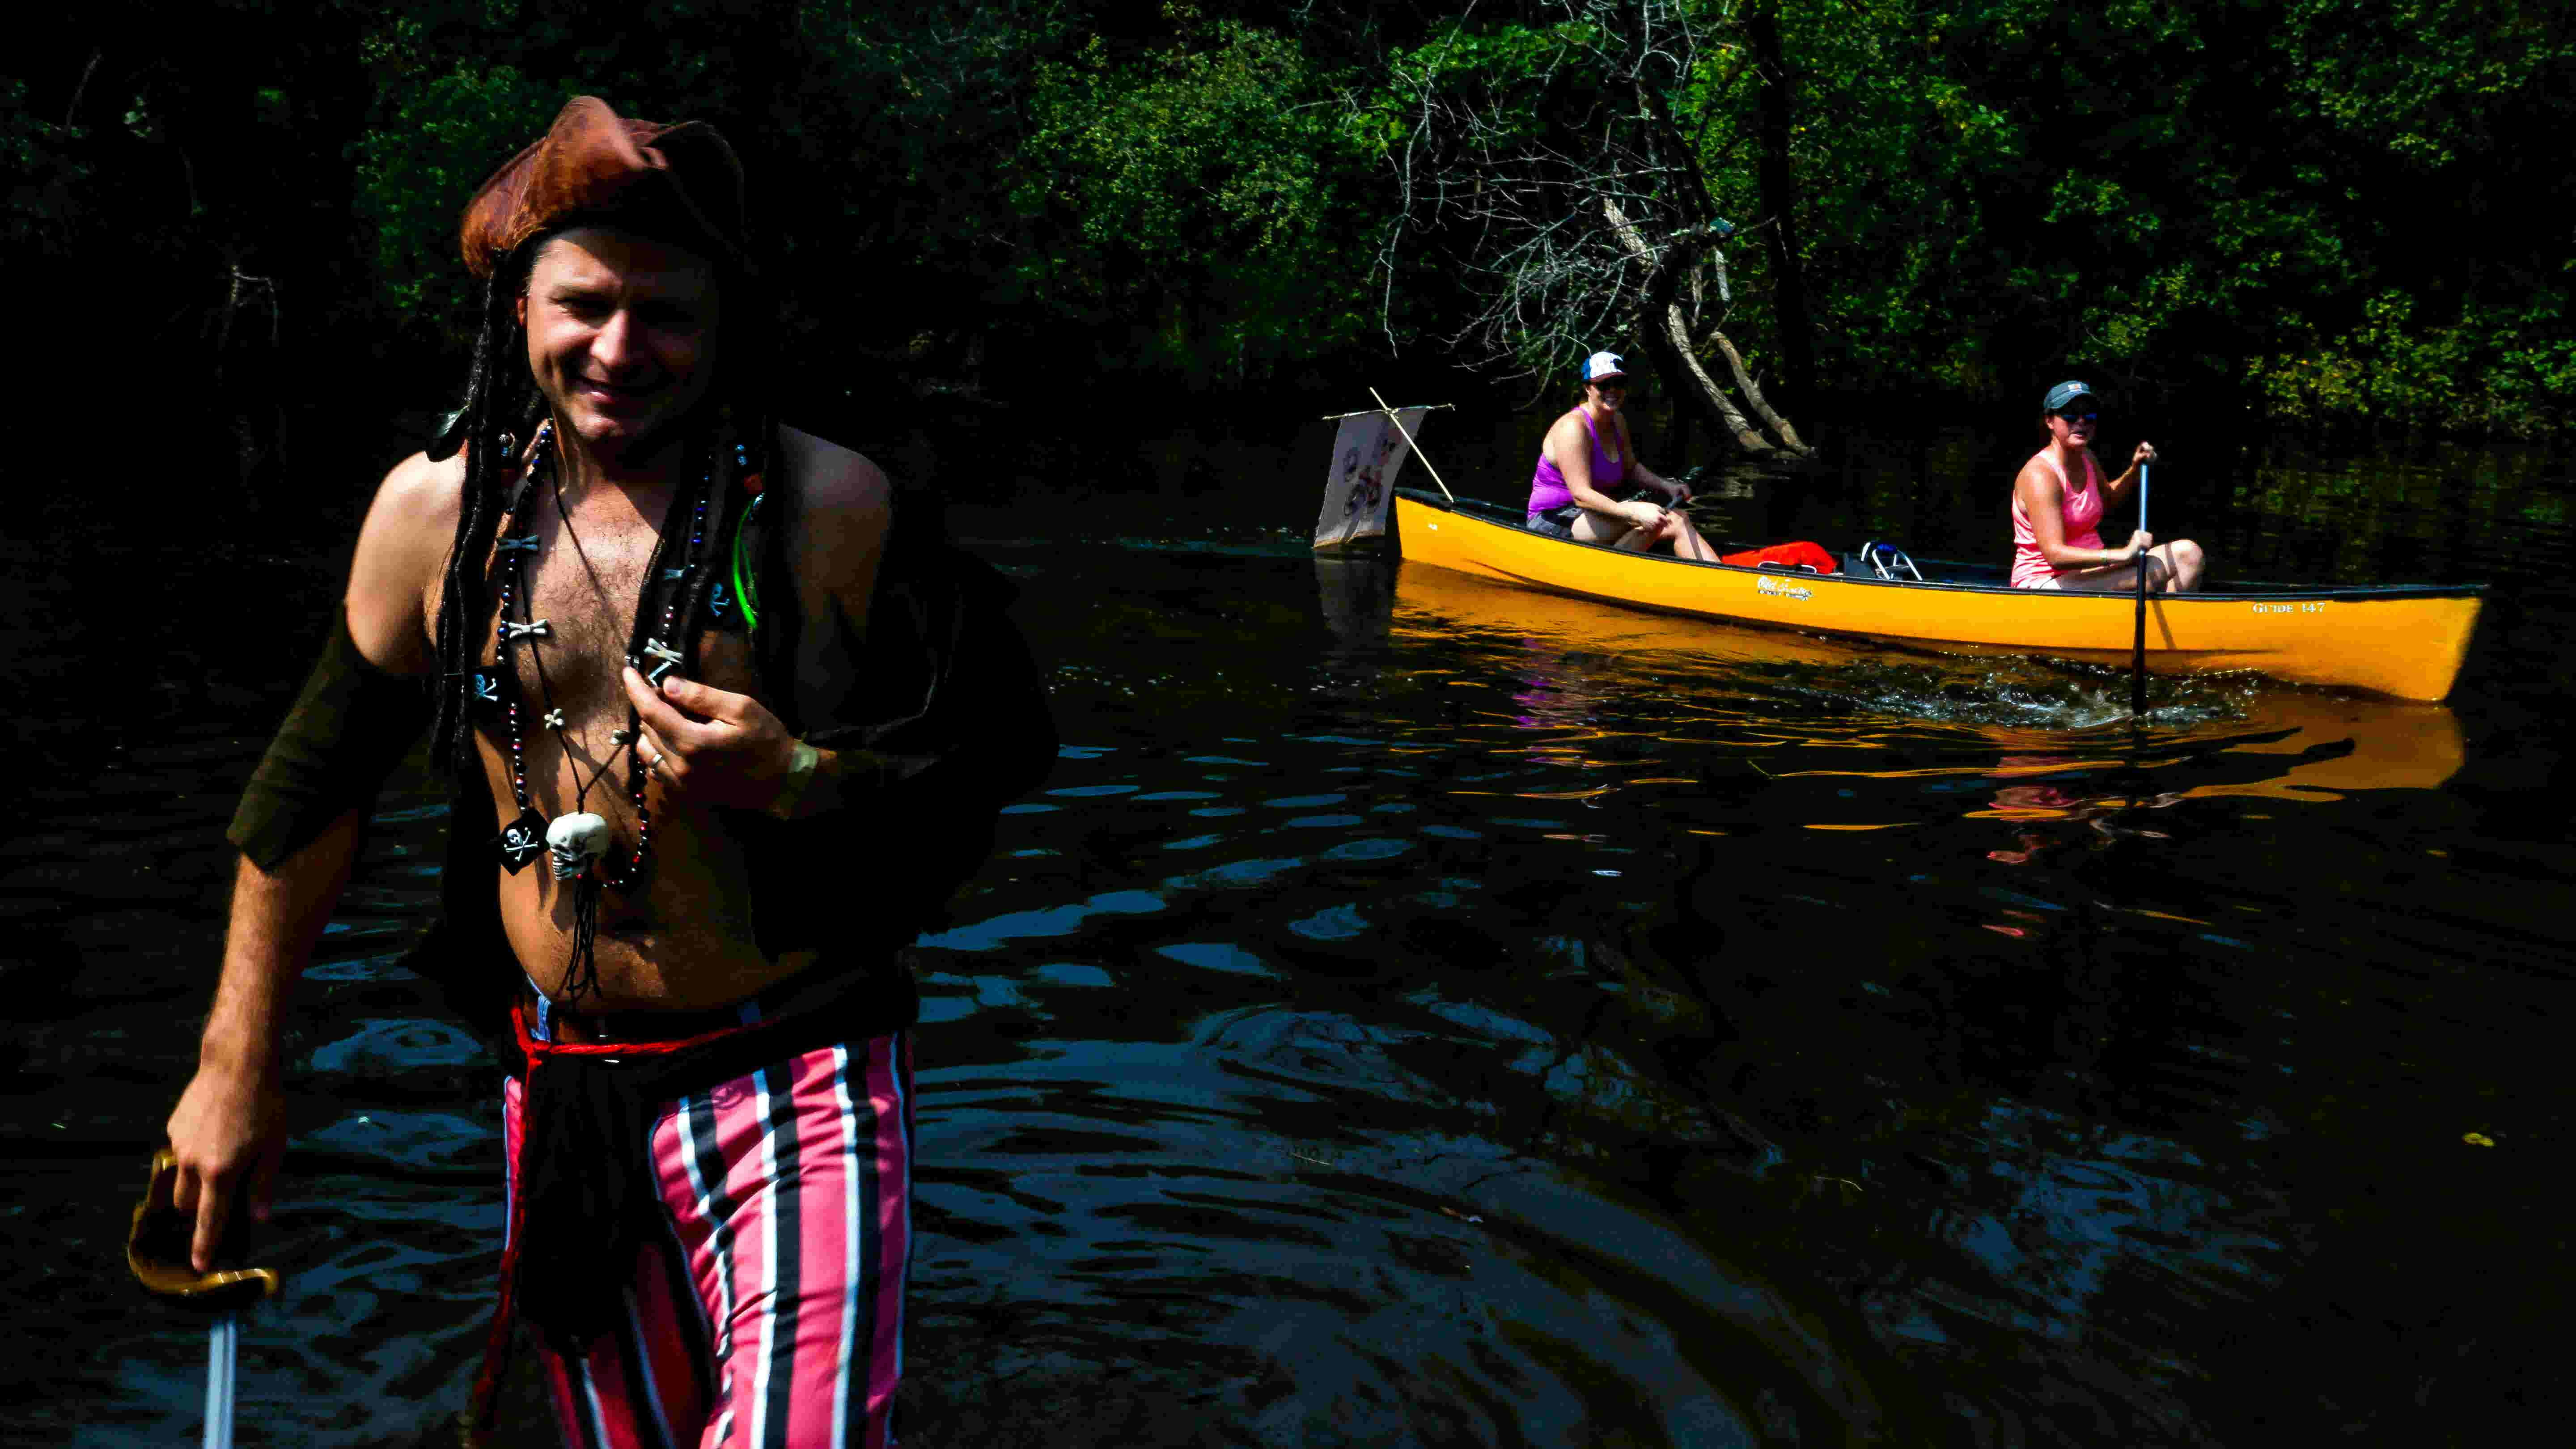 Sights and sounds from PaddleQuest's seventeenth year